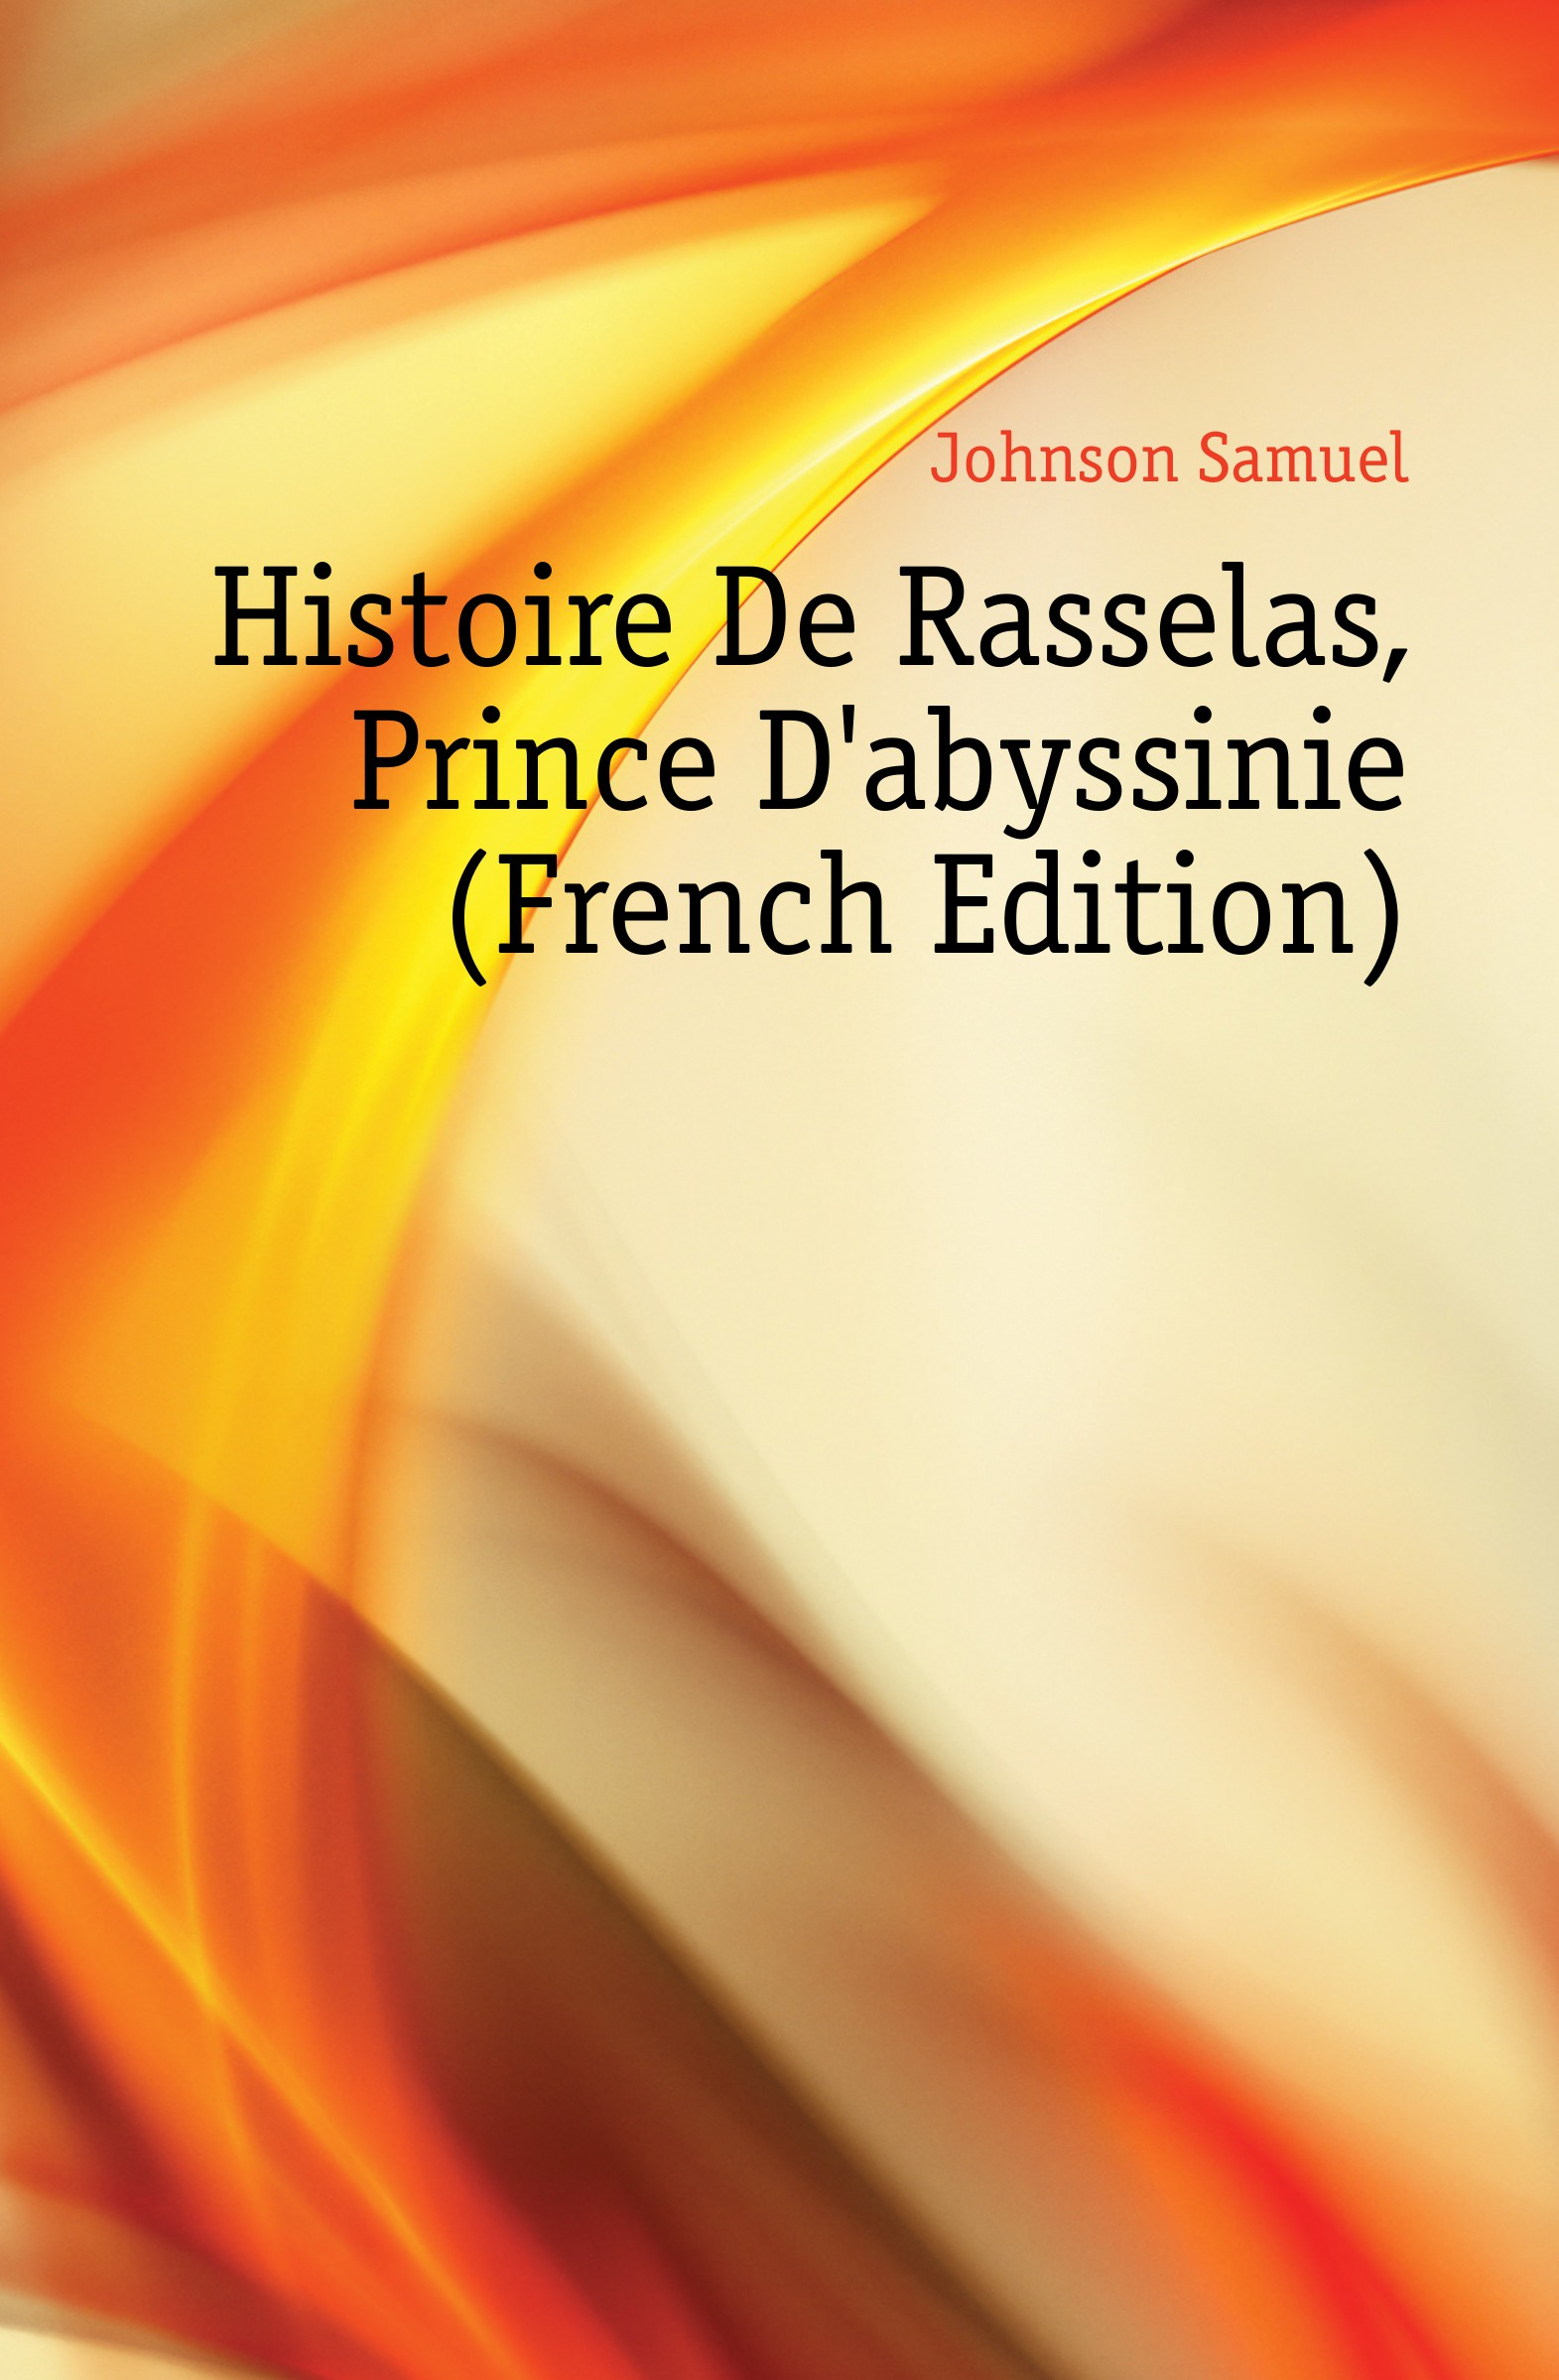 Johnson Samuel Histoire De Rasselas, Prince Dabyssinie (French Edition)